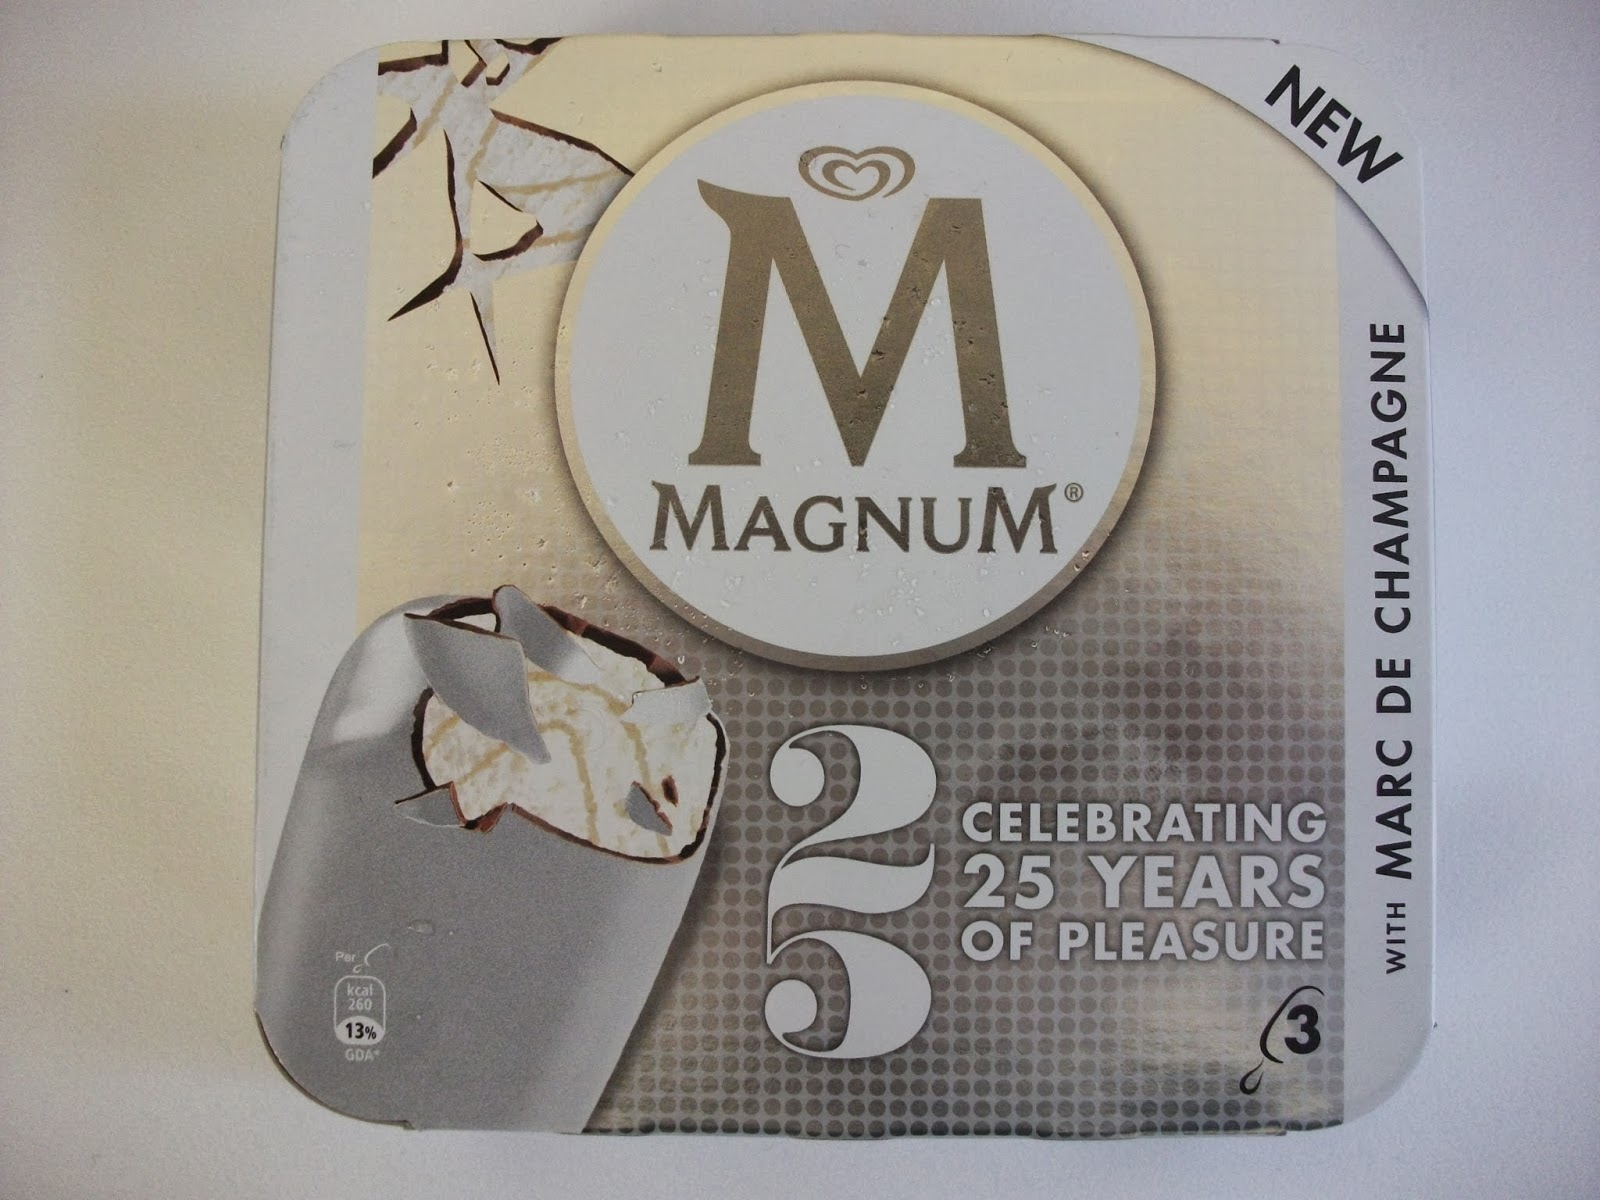 celebrating 25 years of pleasure, the new silver coated marc de champagne flavour Magnum ice cream